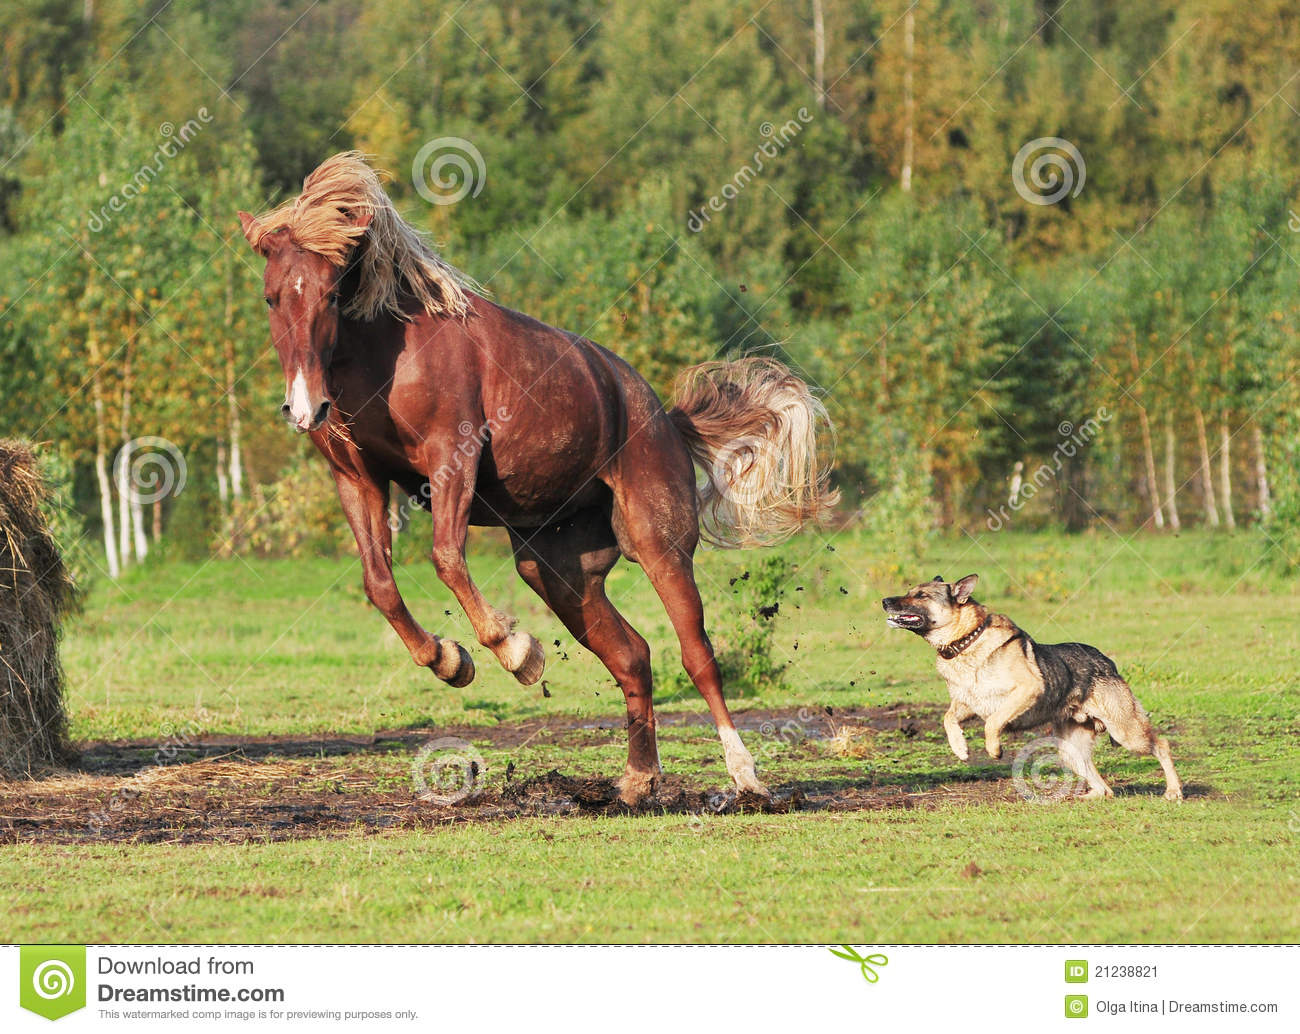 Horse And Dog Play Together Stock Image - Image: 21238821